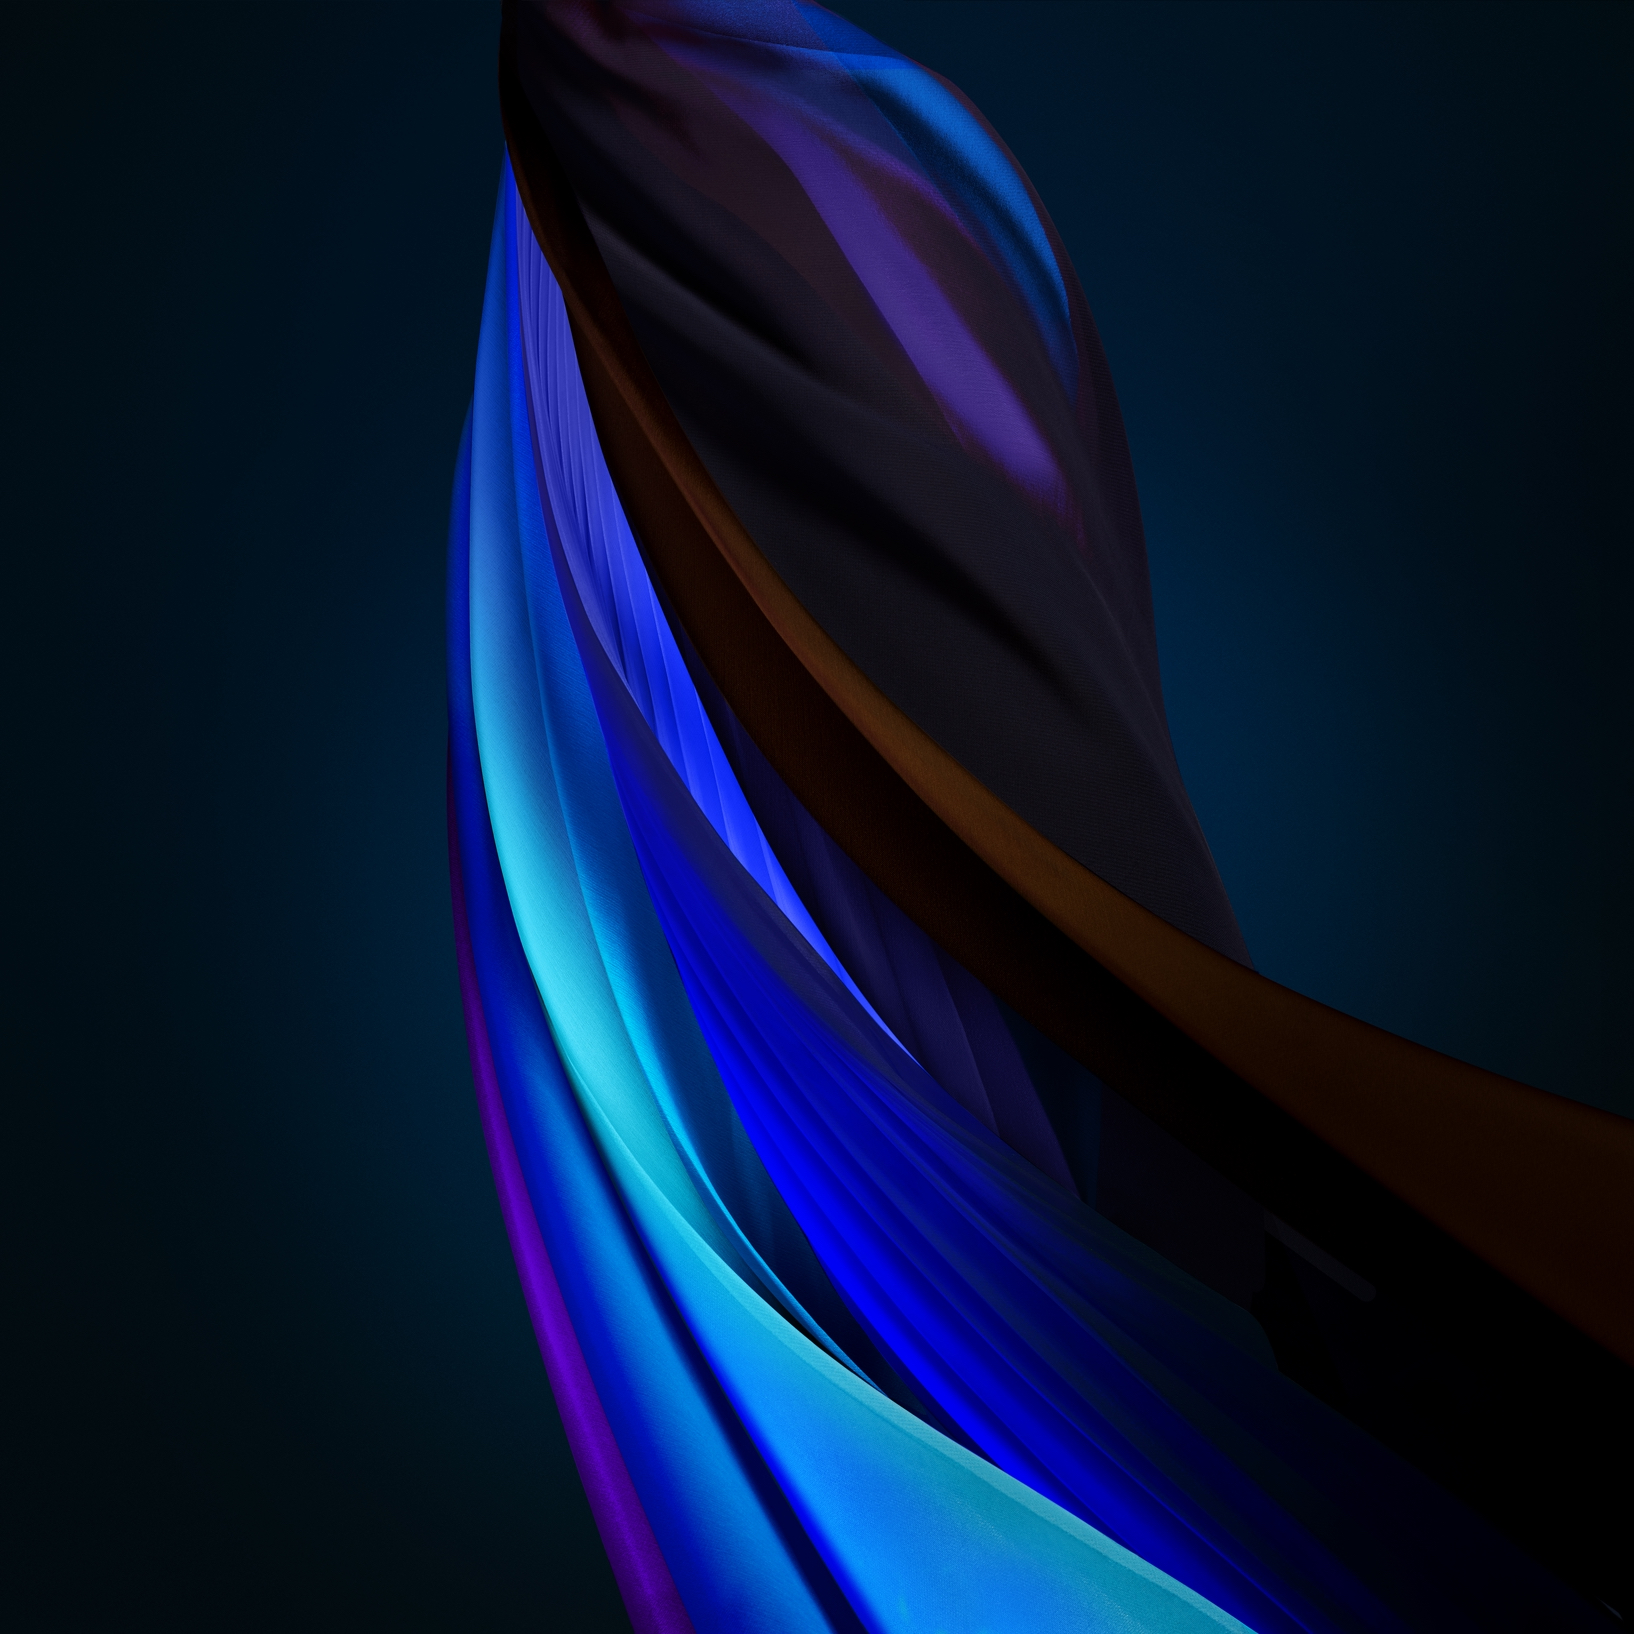 Download Apple S New 2020 Iphone Se Wallpapers Here 9to5mac